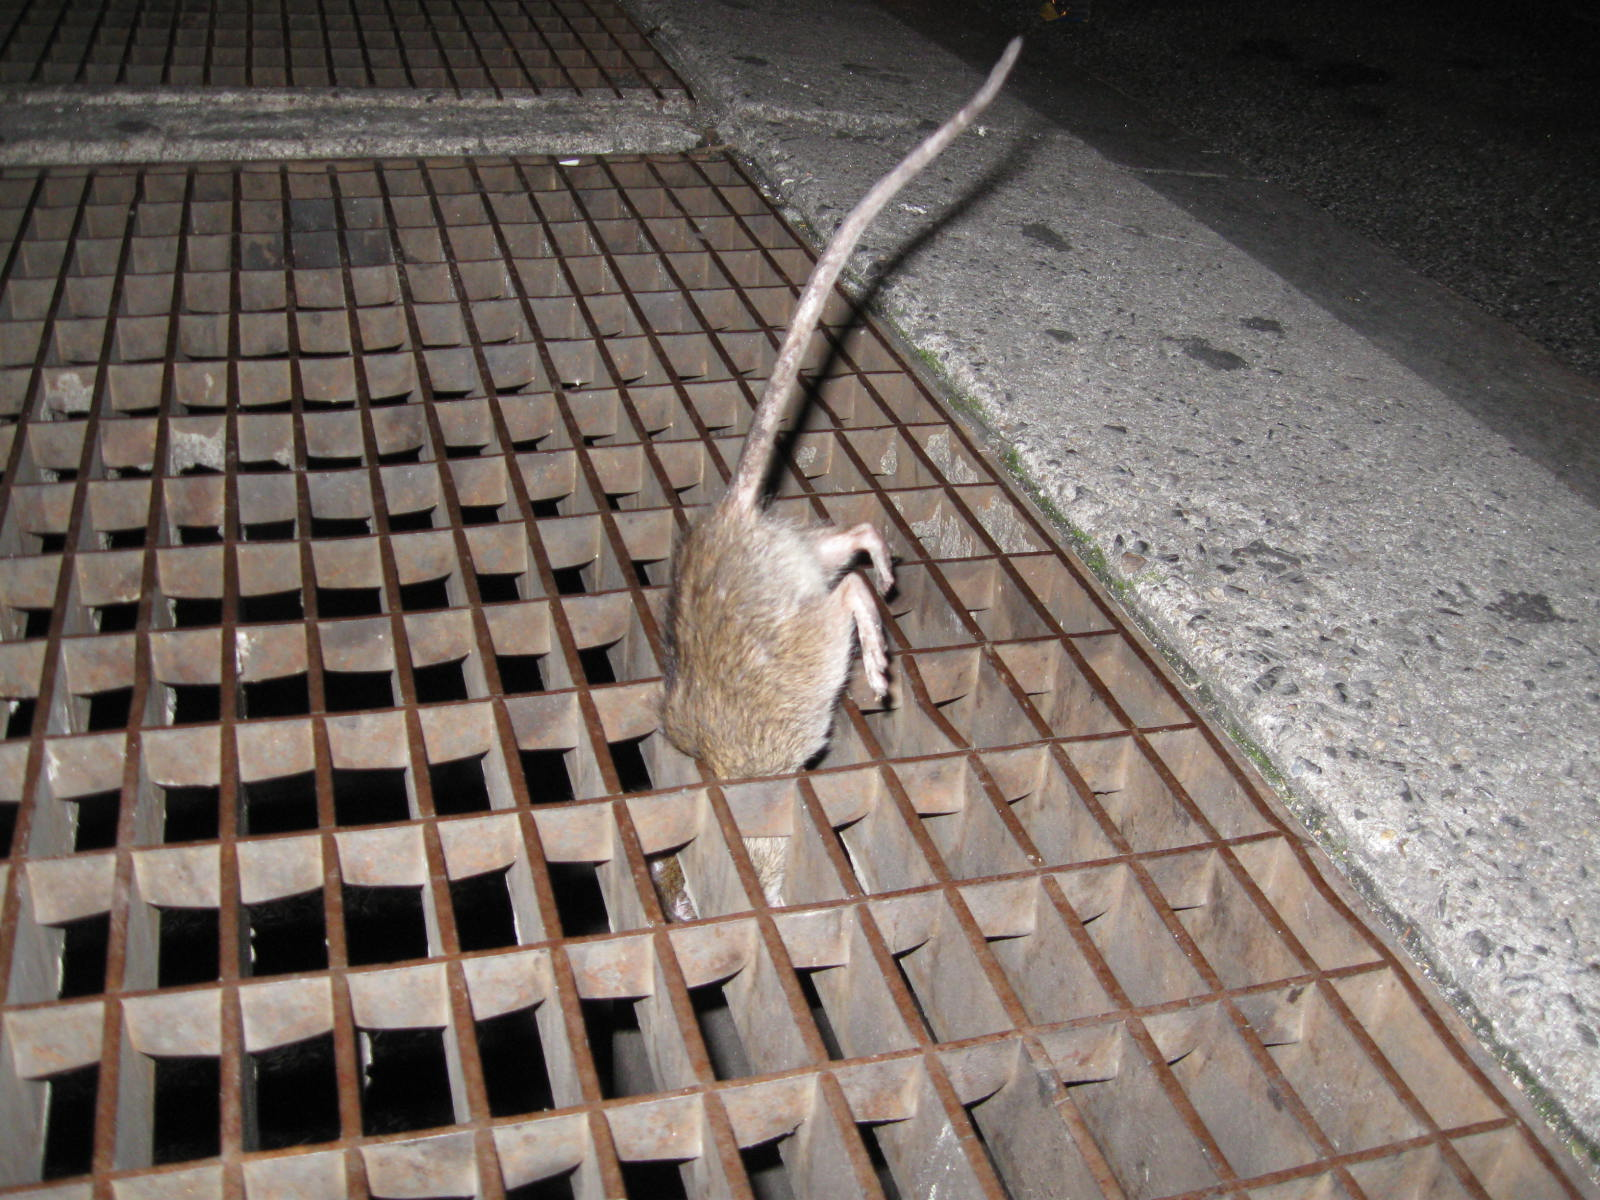 New York rat